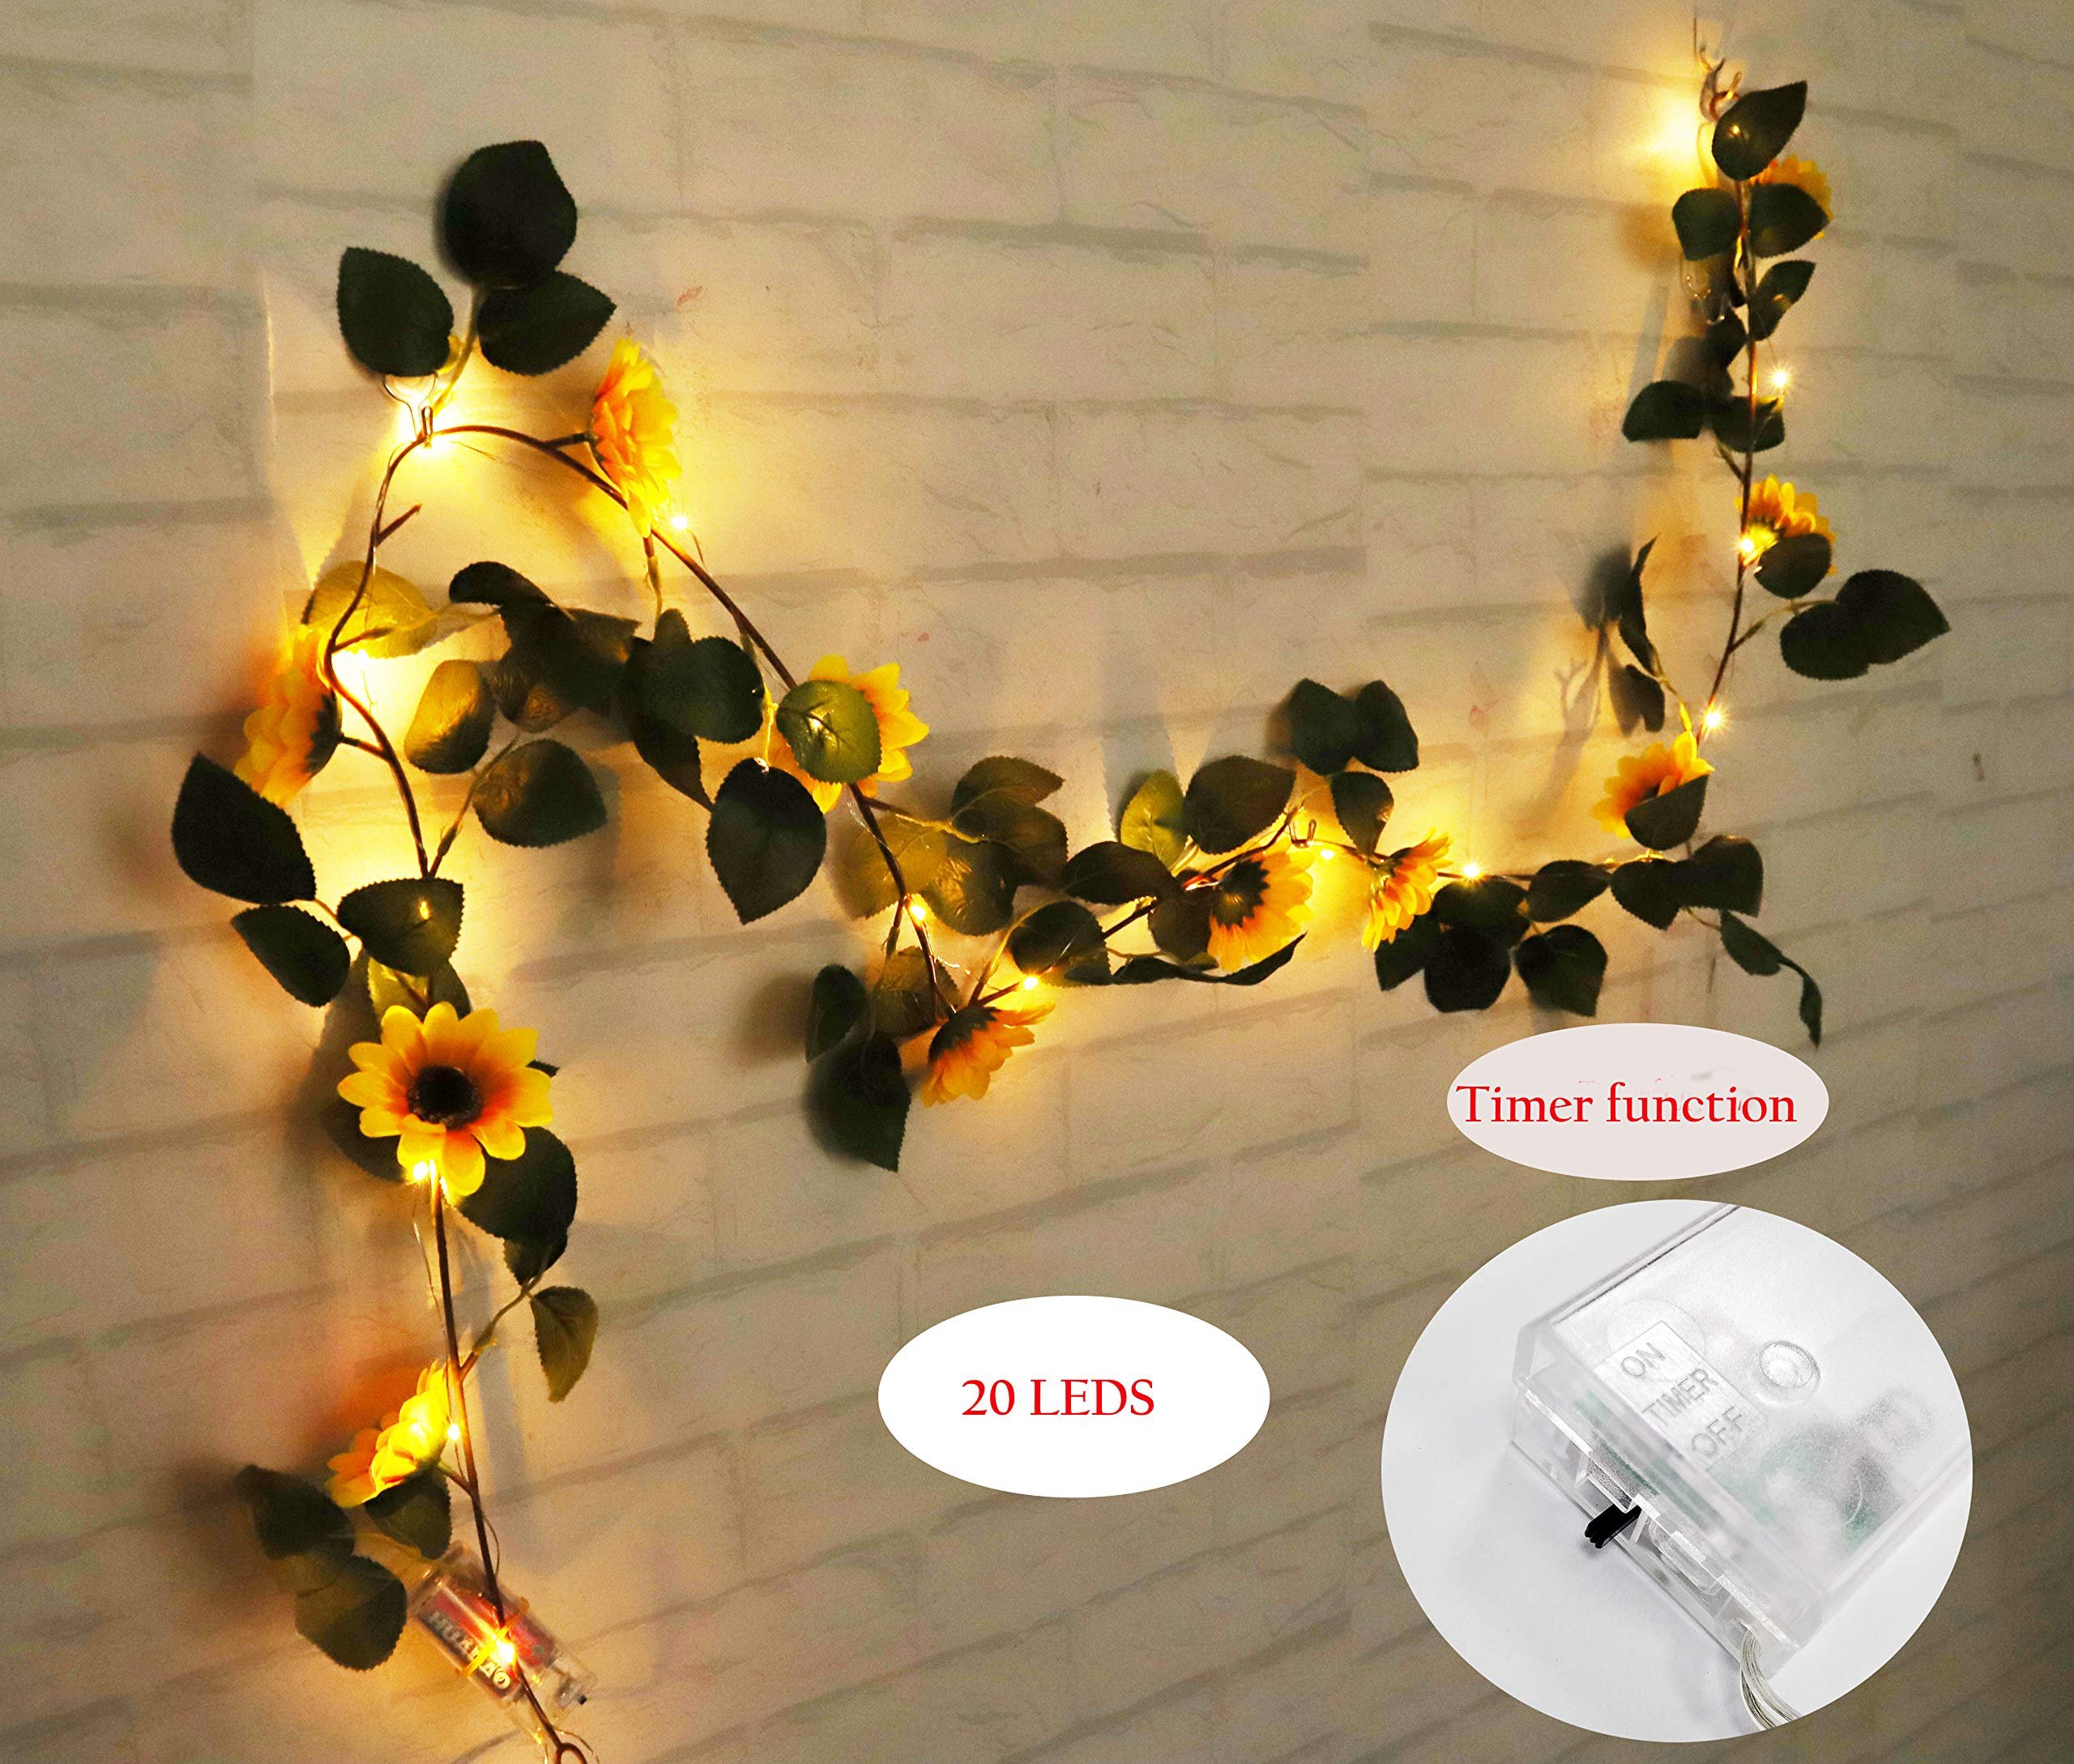 FLCSIed 2 AA Batteries Powered 20 LED Silver String Fairy Lights with Sunflowers and Timer Function, Warm White